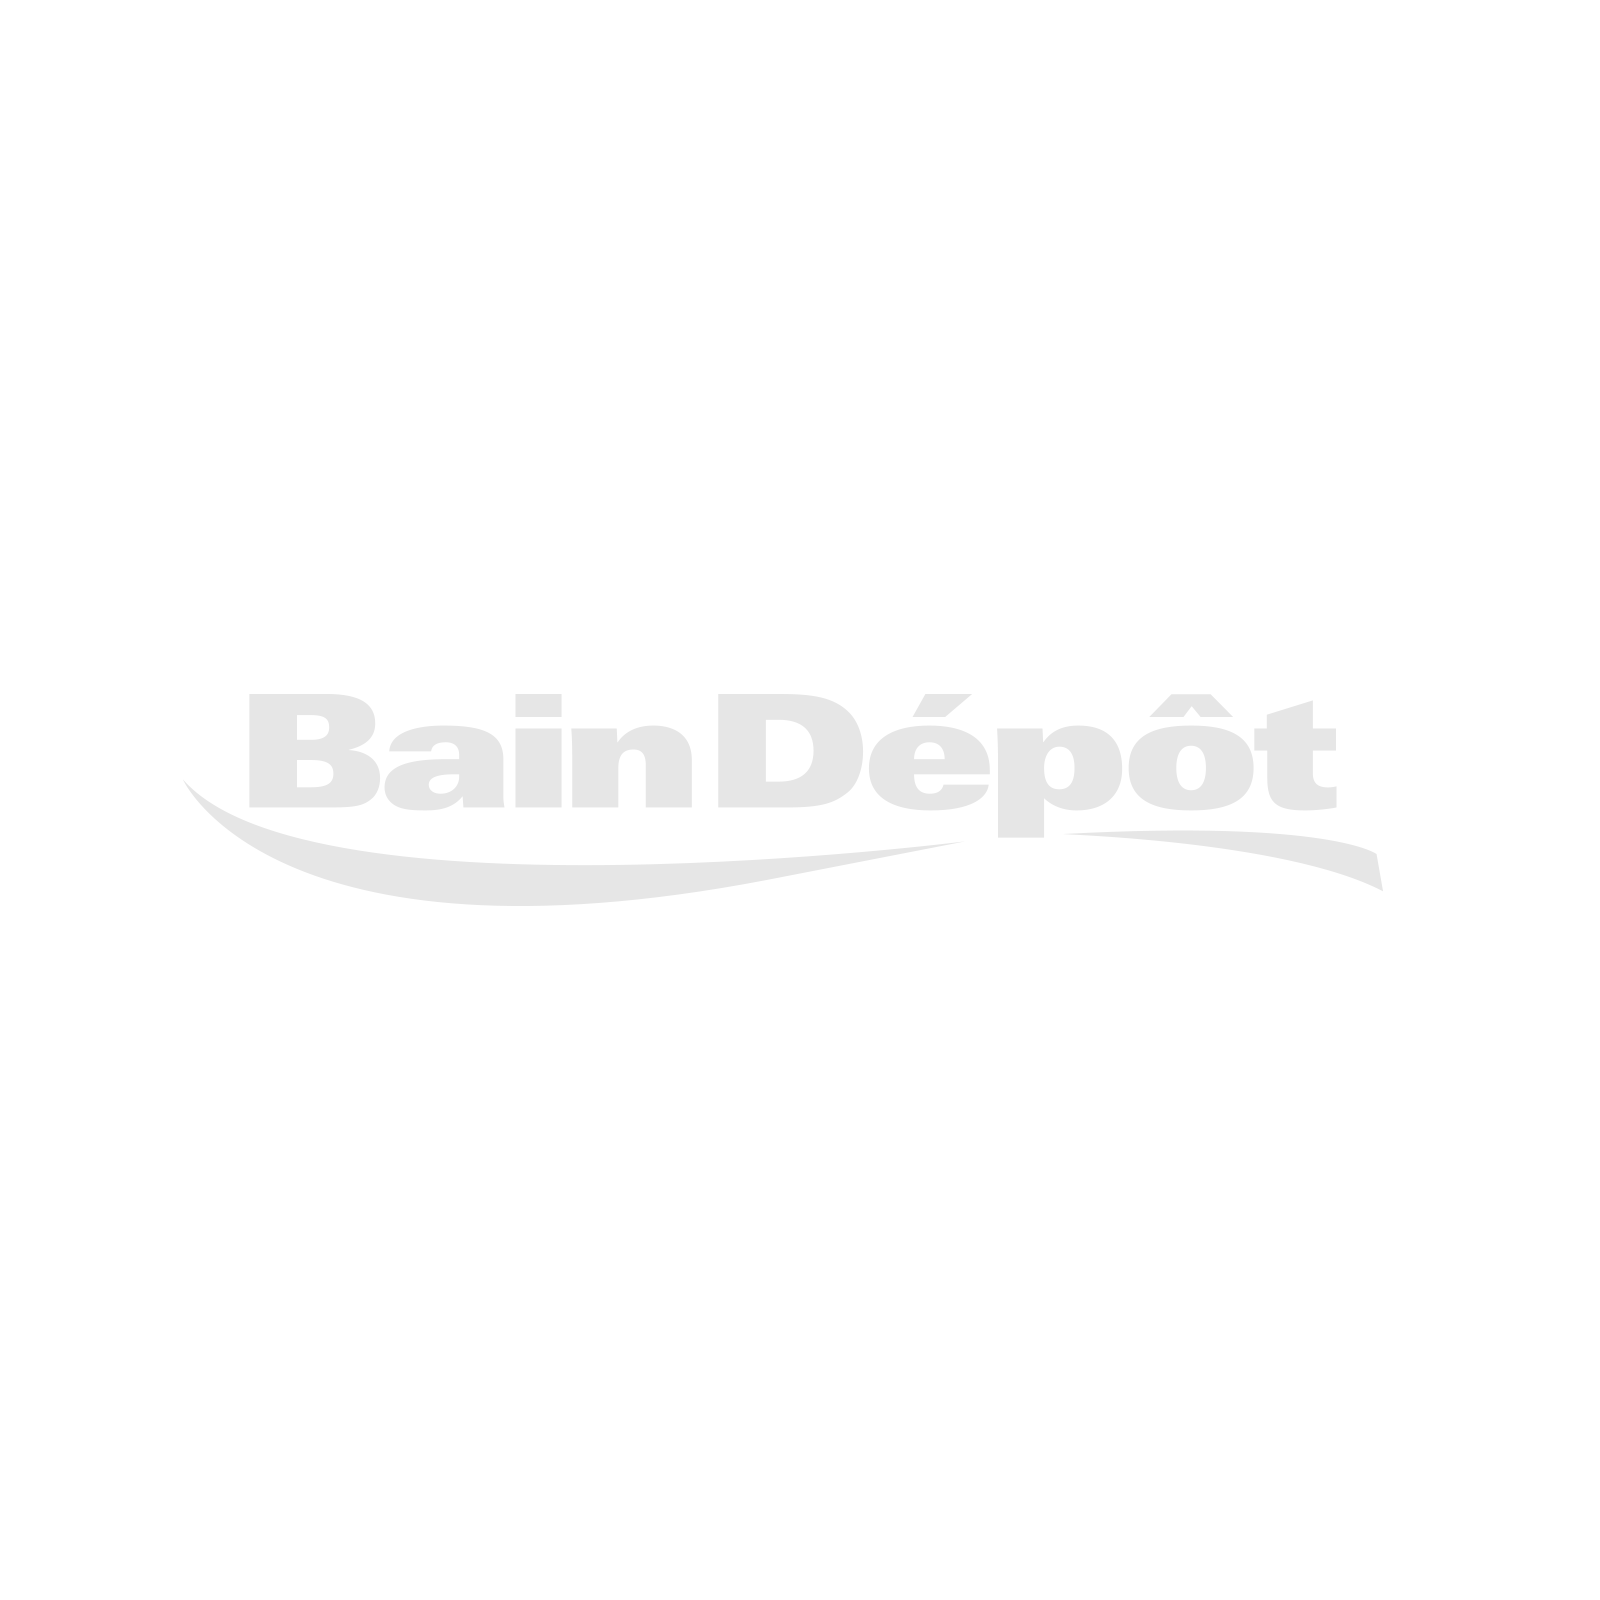 Chrome and cubic thermostatic shower faucet with rain shower head